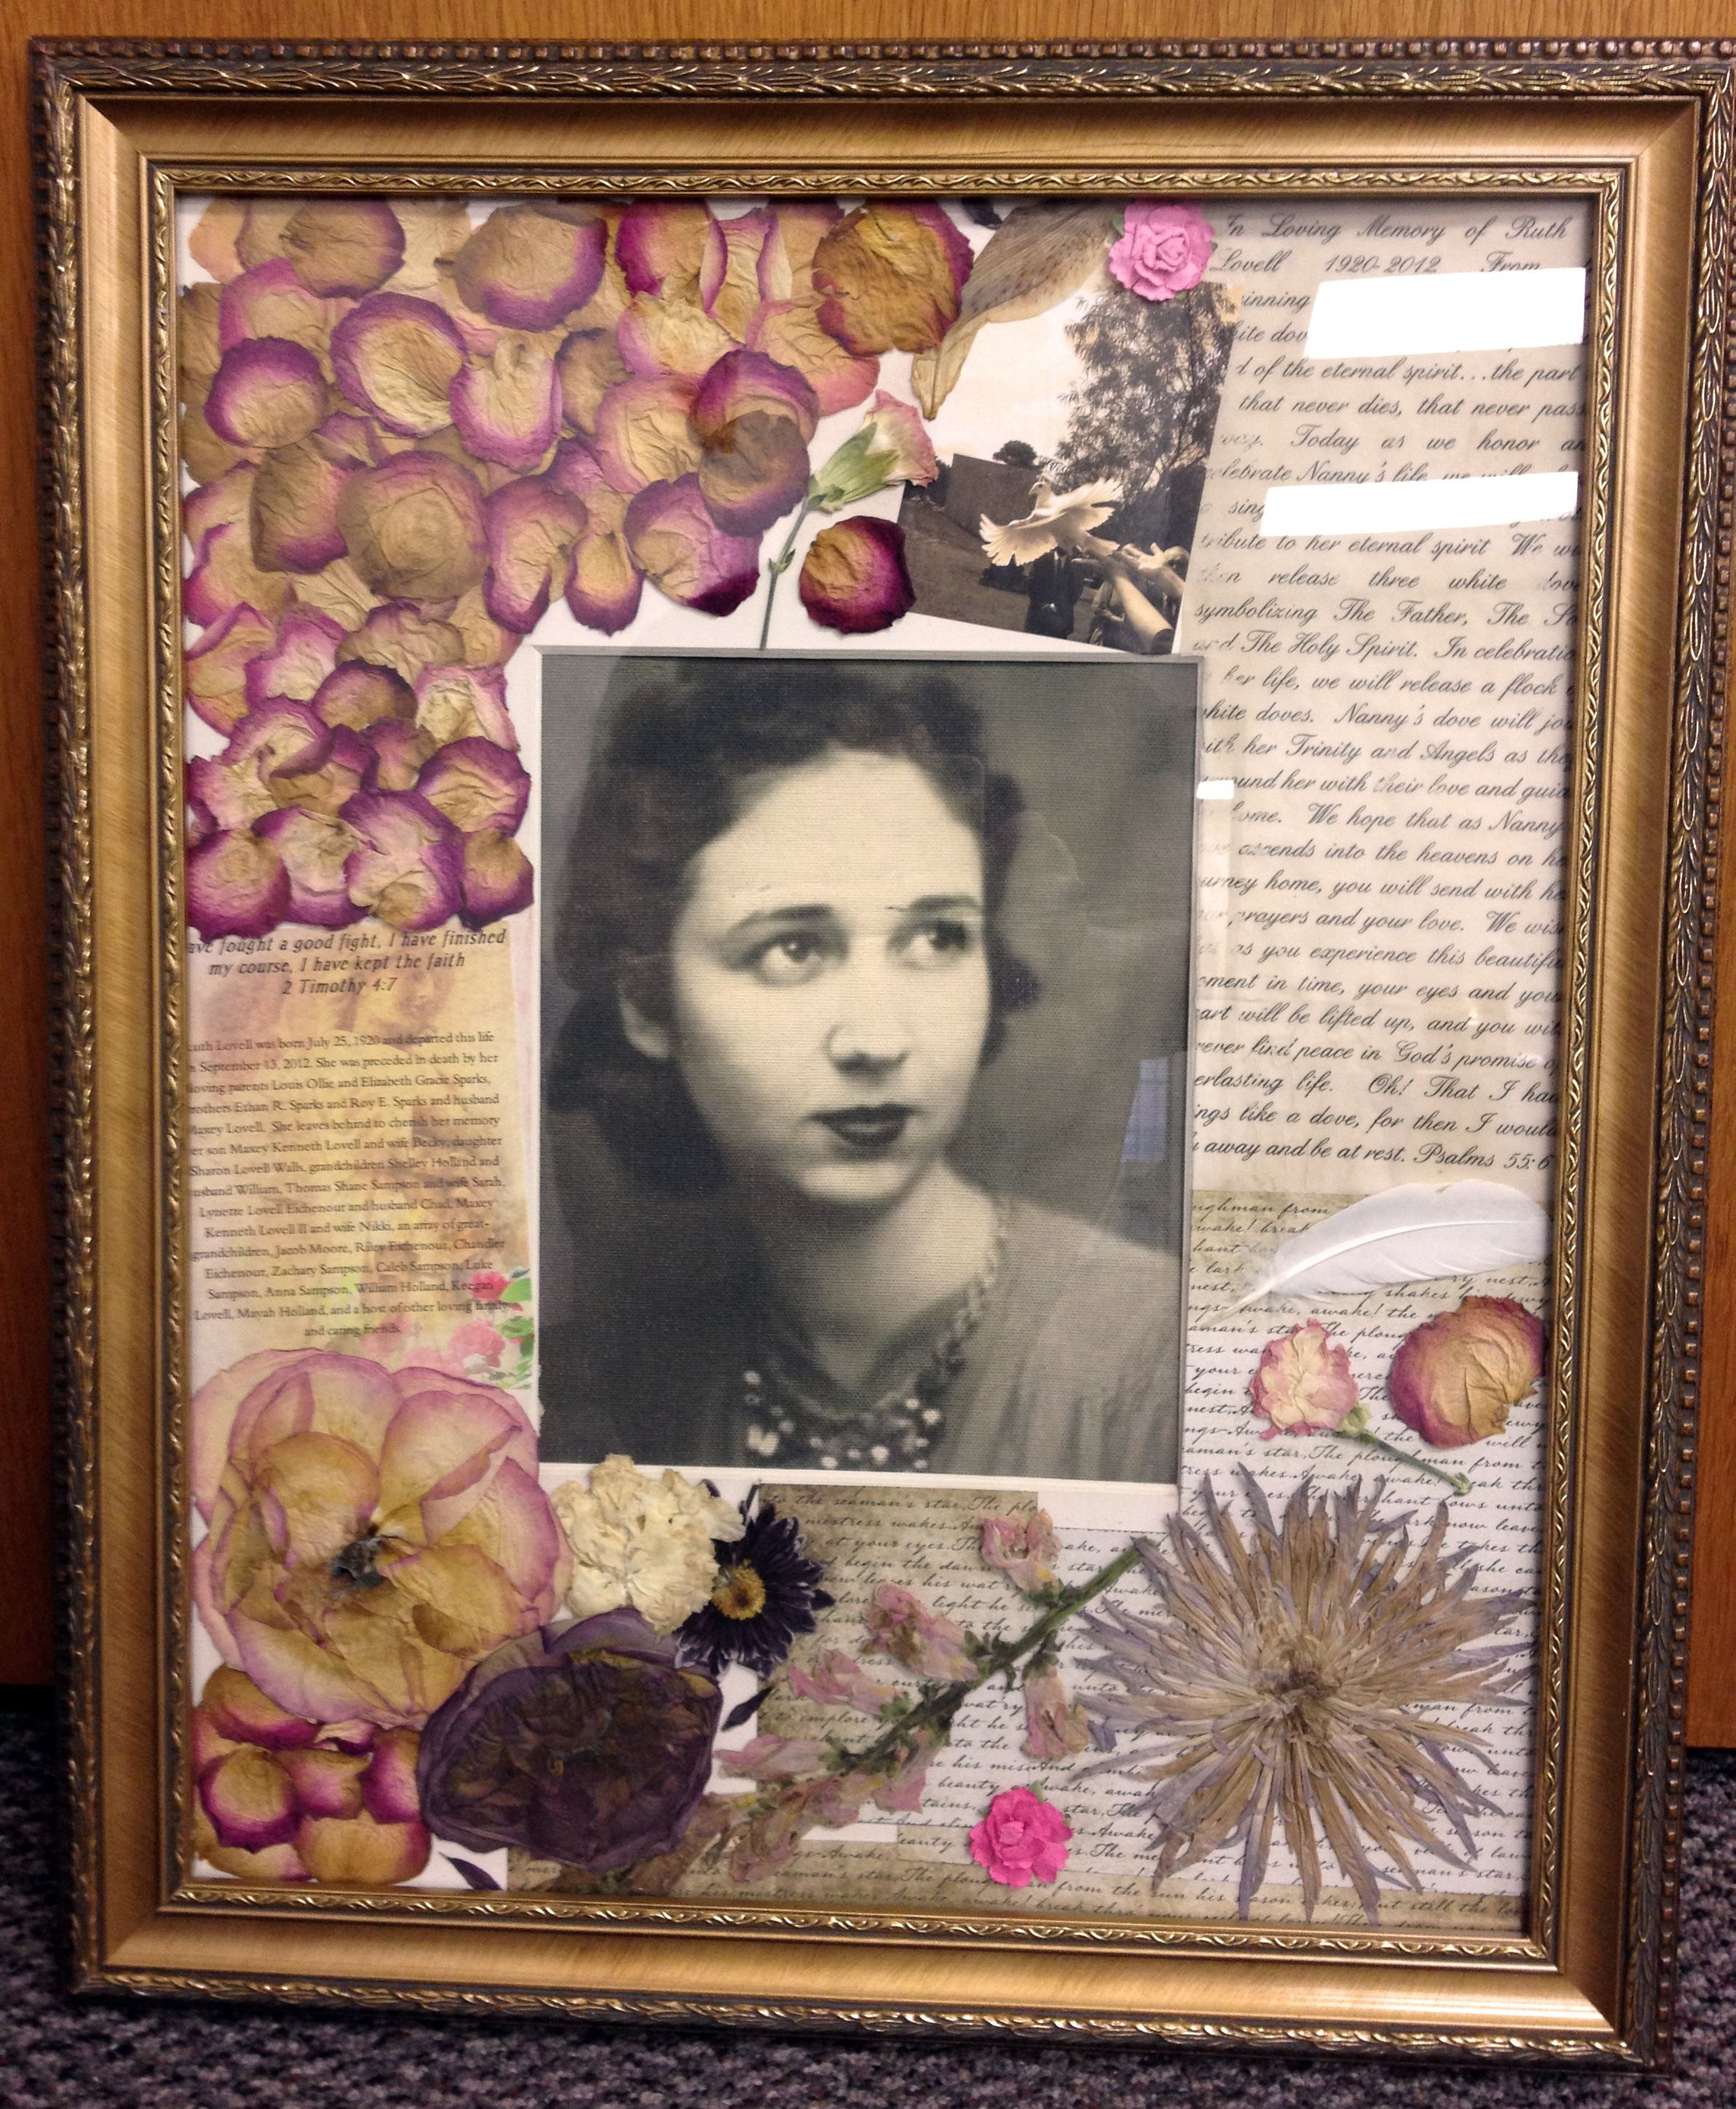 How to make scrapbook look good - I Had This Idea To Make A Photo Matte Look Like A Scrapbook Page To Honor